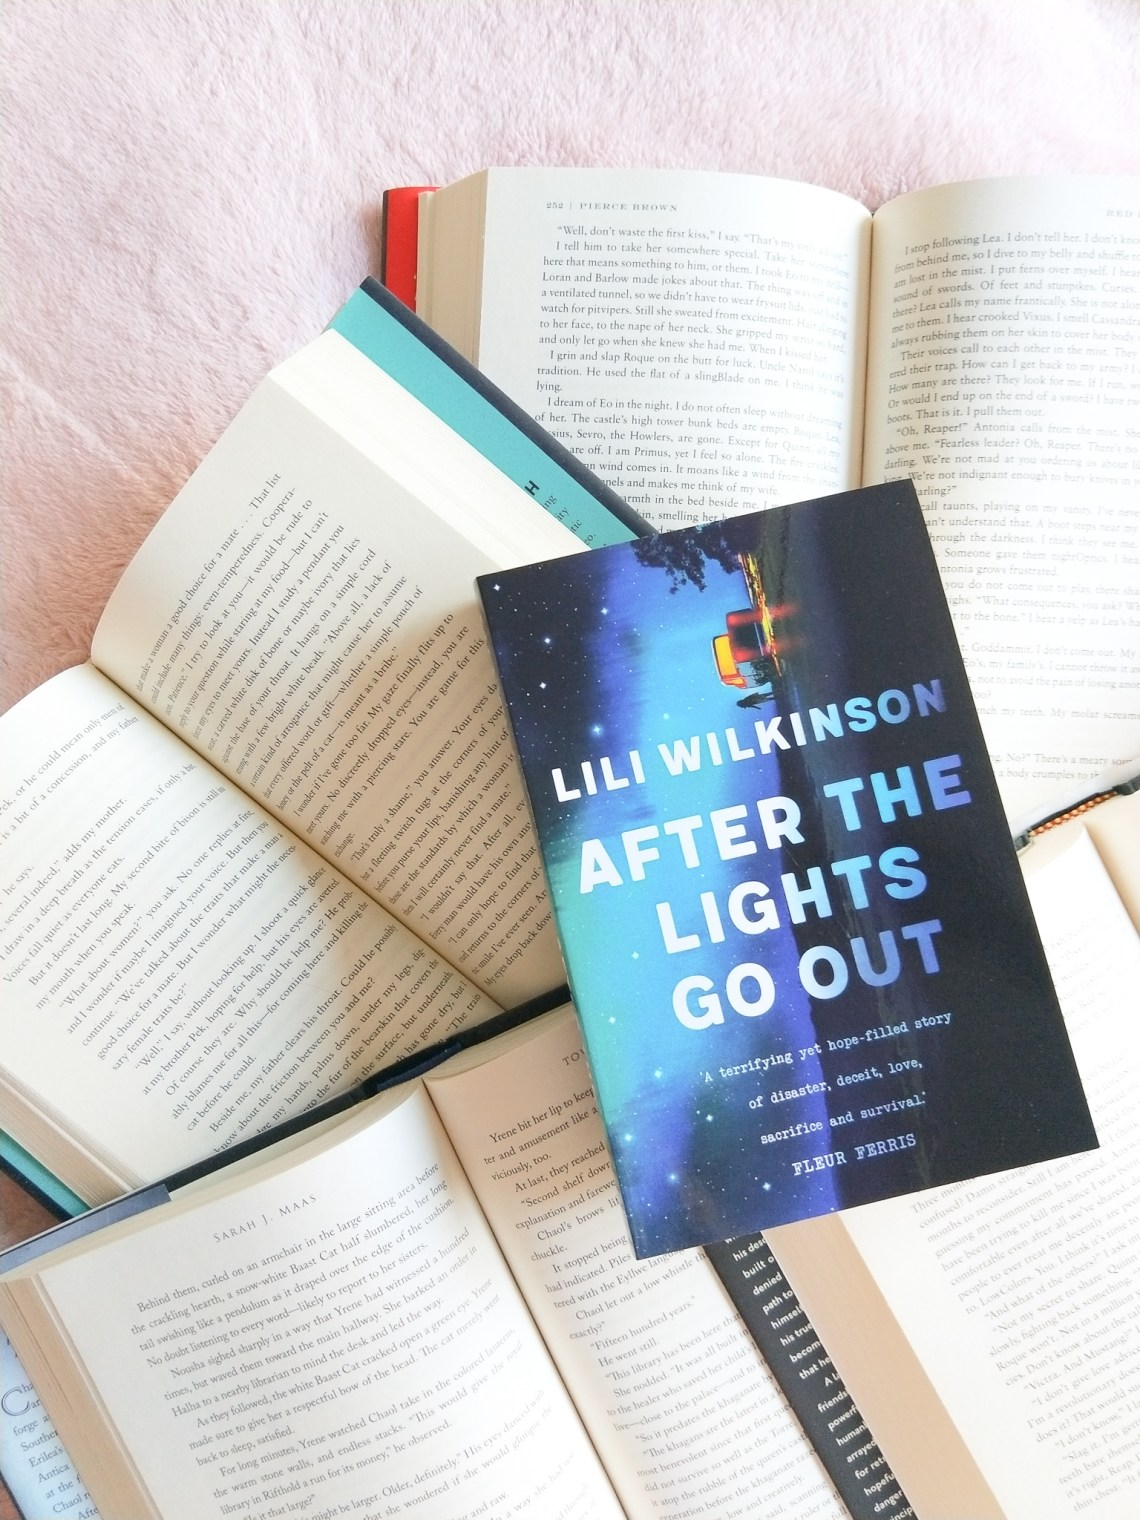 IMG20180811144307 - After The Lights Go Out Book Review